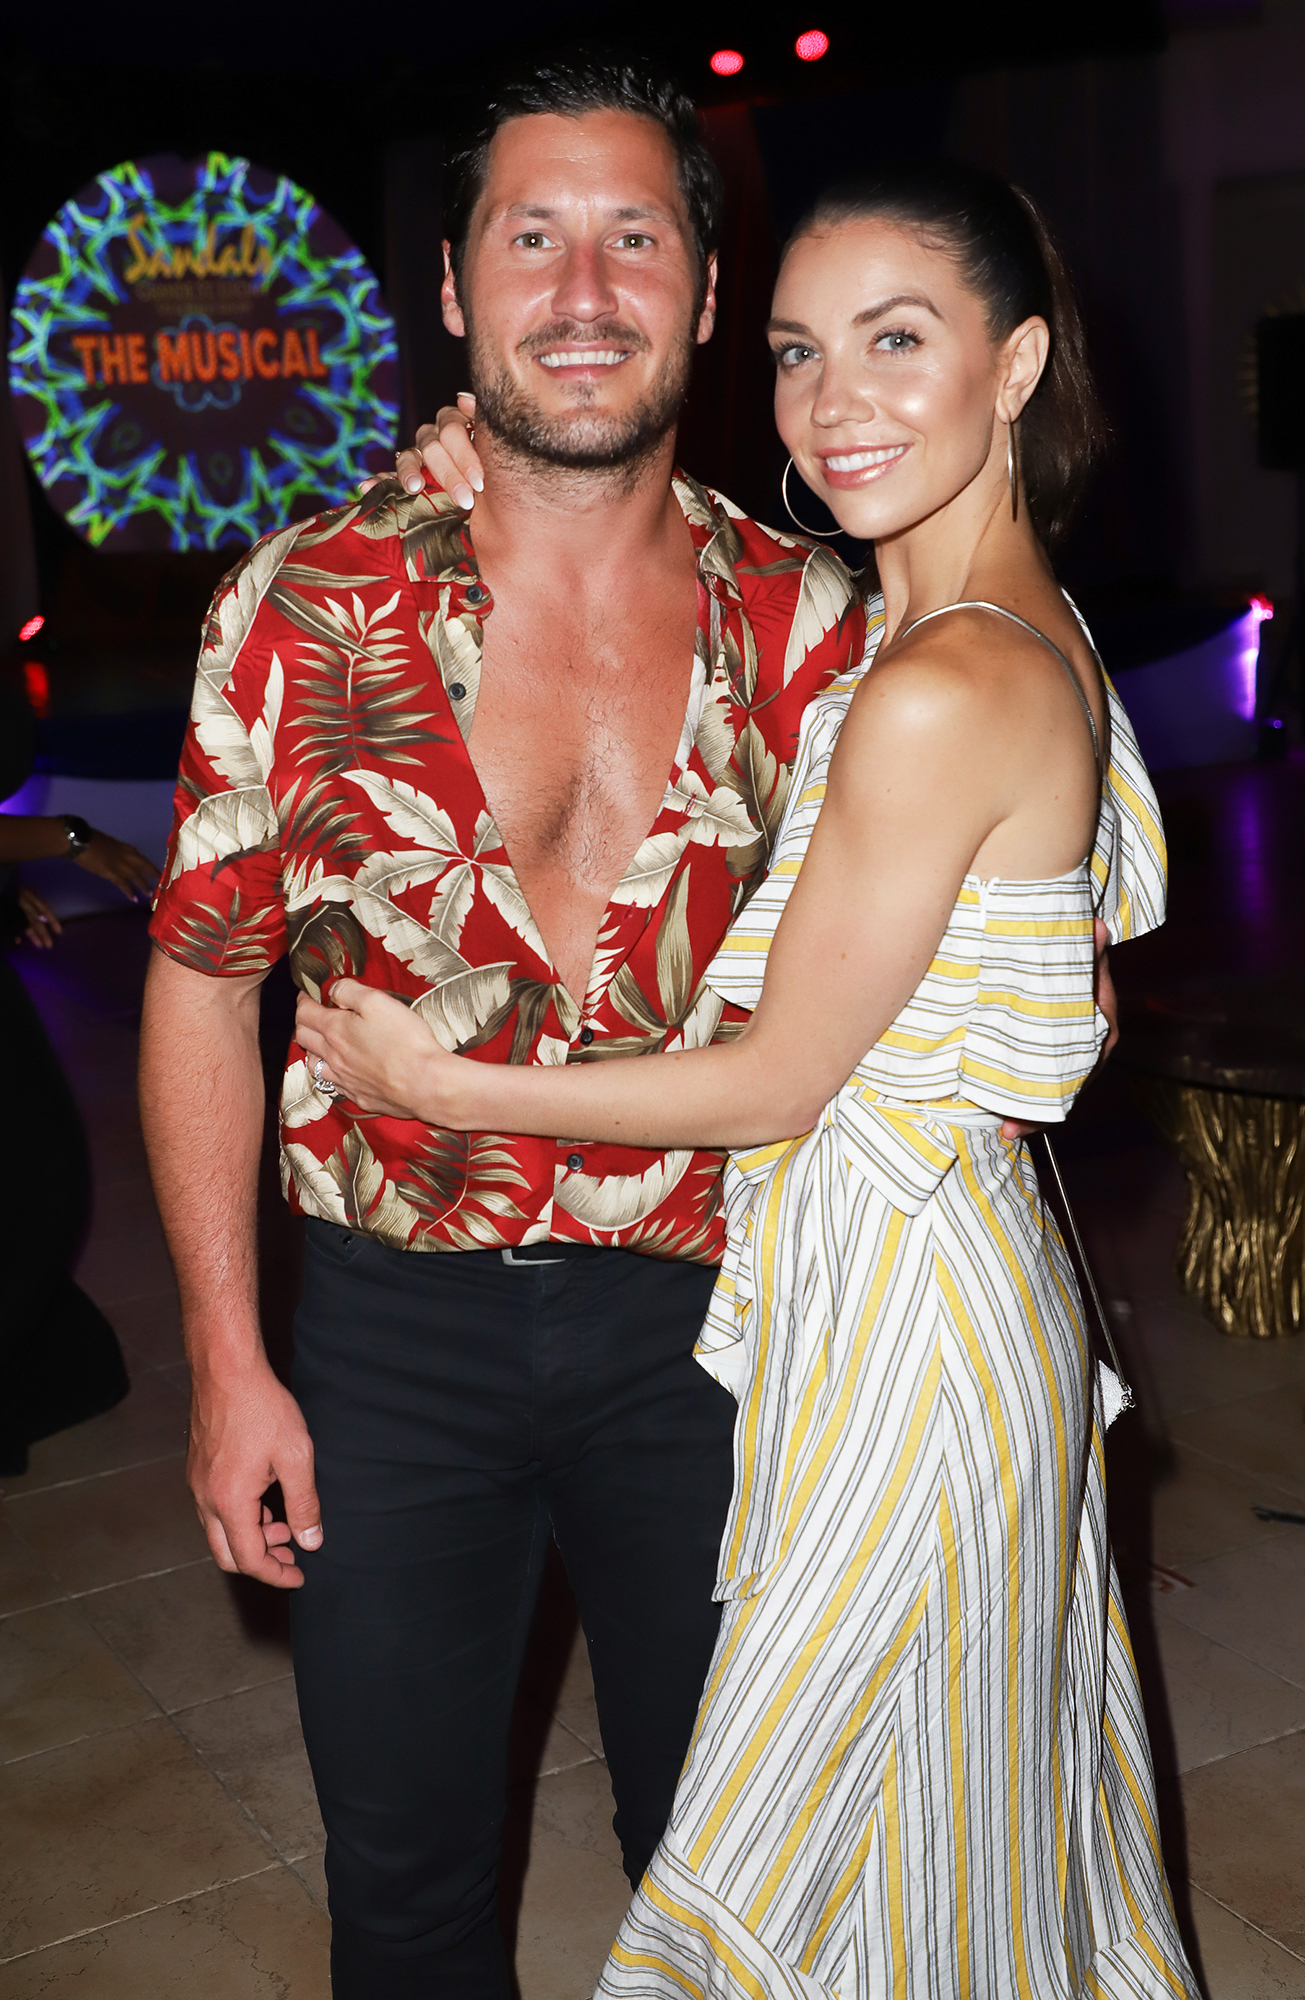 Val Chmerkovskiy Jenna Johnson Honeymoon - The professional dancers ended their vacation with a special surprise performance at the resort's talent night.